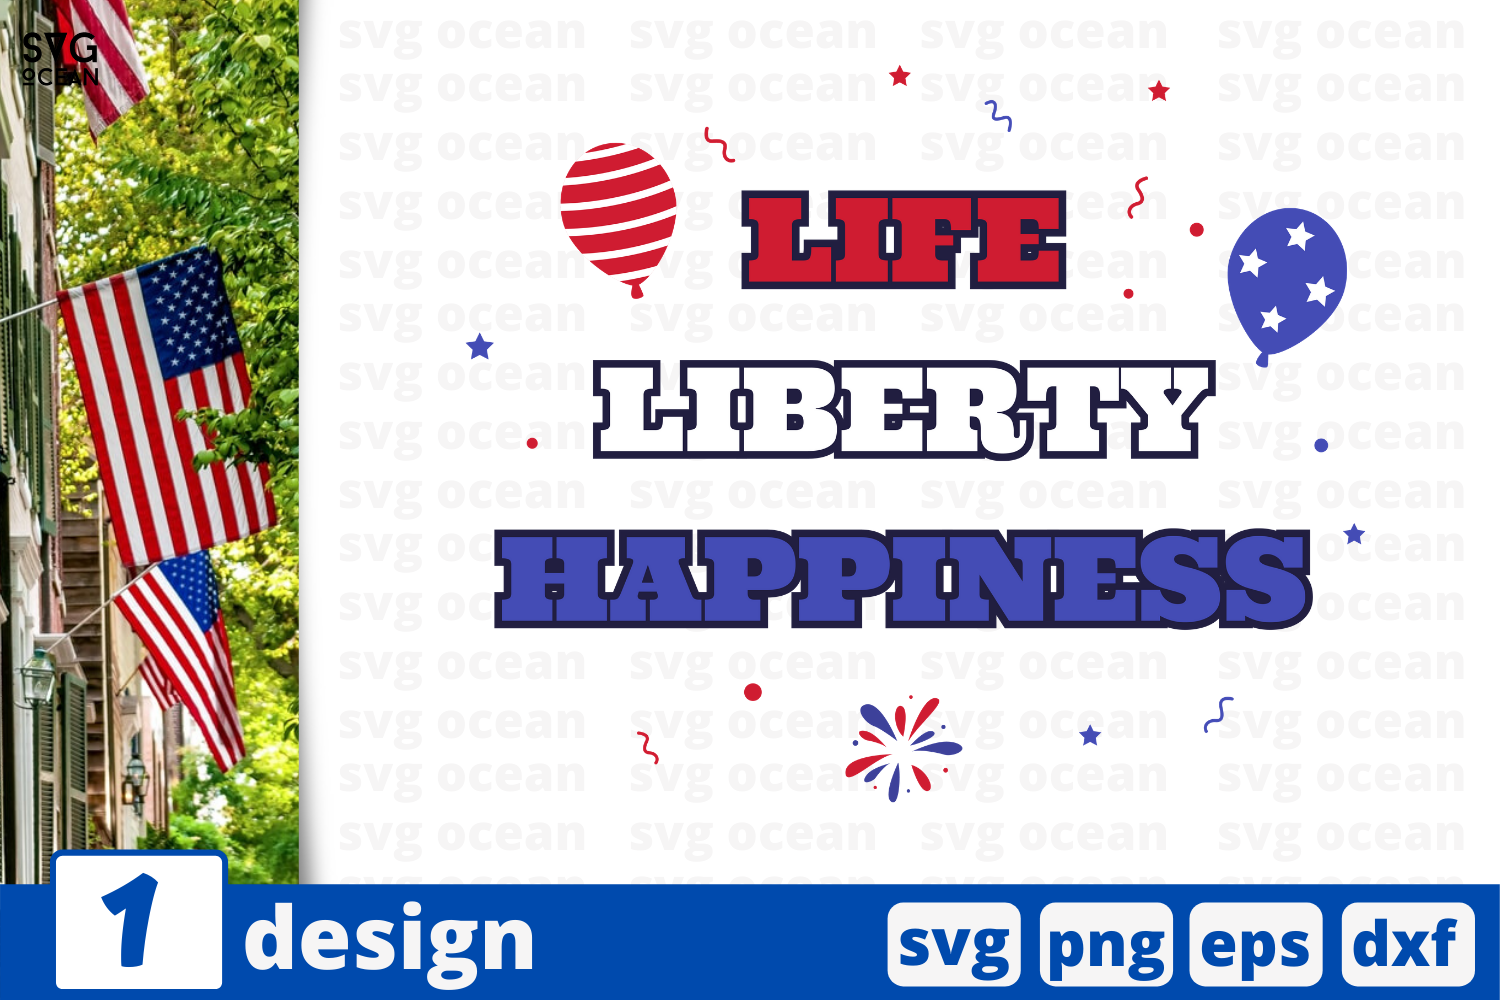 Download Free Life Liberty Happiness Graphic By Svgocean Creative Fabrica for Cricut Explore, Silhouette and other cutting machines.